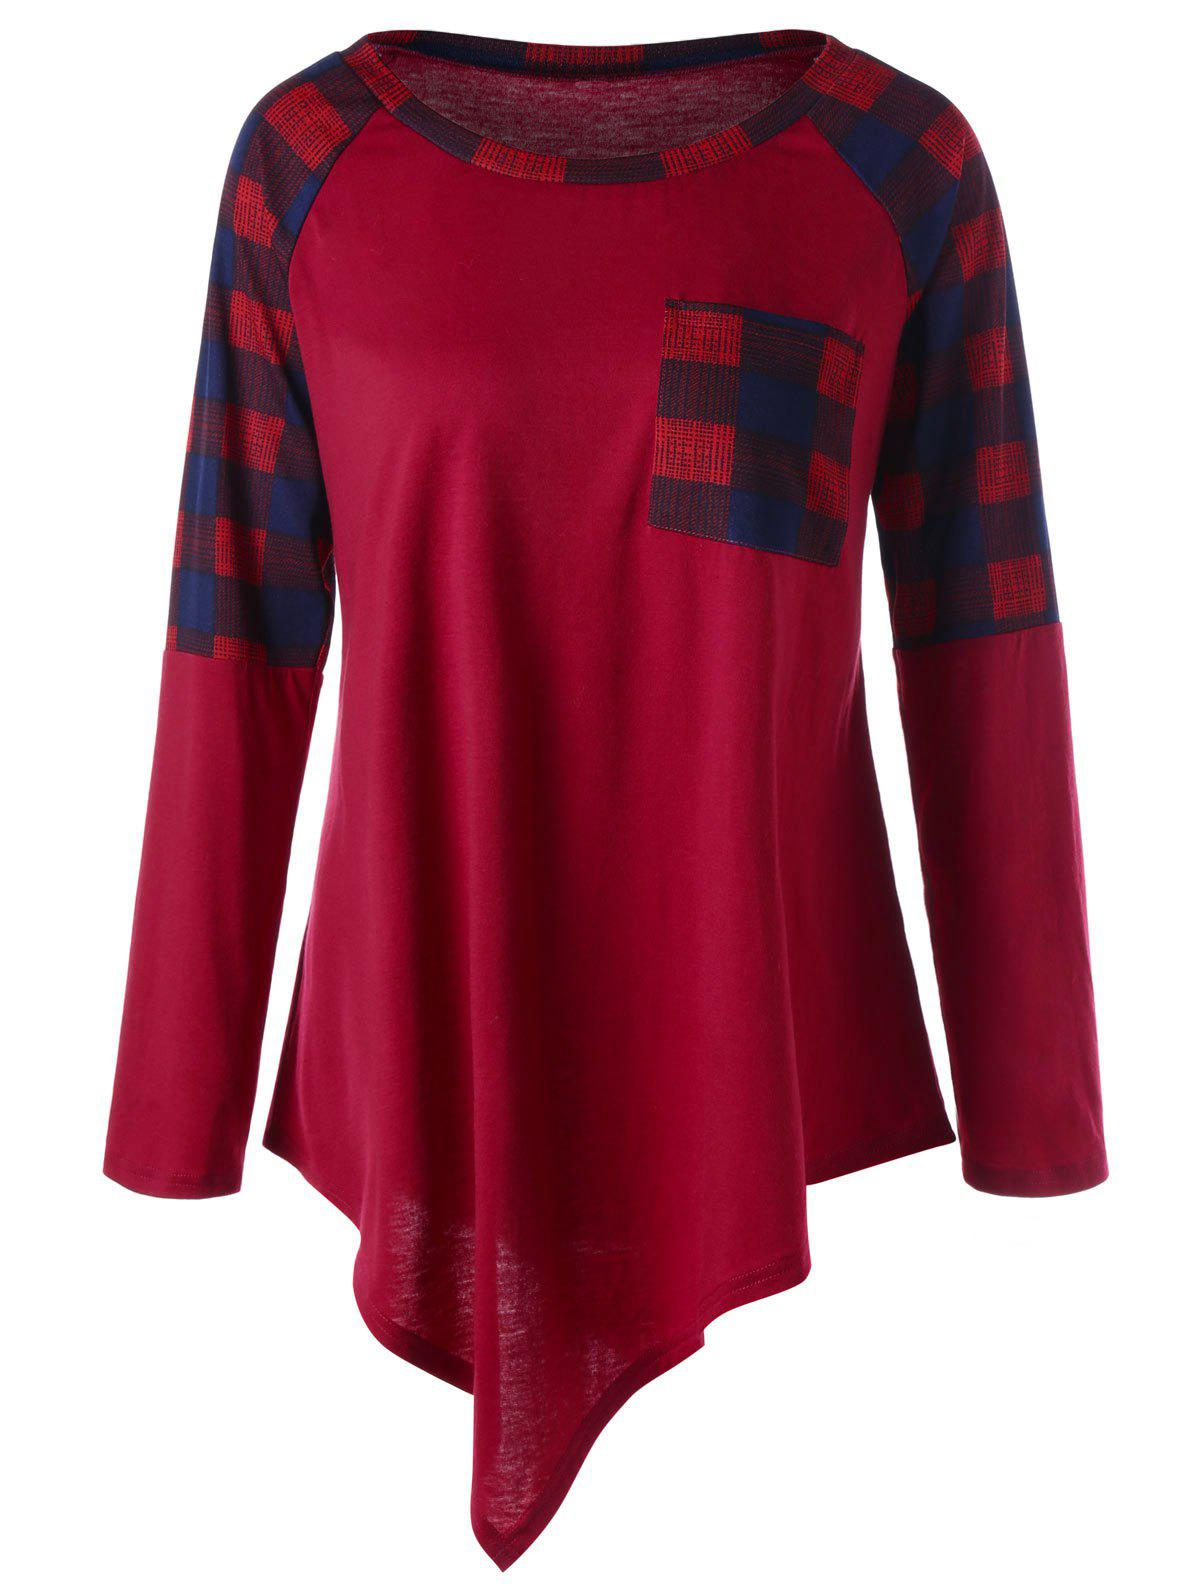 Plus Size Raglan Sleeve Plaid Asymmetrical TopWOMEN<br><br>Size: 5XL; Color: WINE RED; Material: Polyester,Spandex; Shirt Length: Long; Sleeve Length: Full; Collar: Round Neck; Style: Casual; Season: Fall,Spring; Embellishment: Pockets; Pattern Type: Plaid; Weight: 0.2700kg; Package Contents: 1 x Top;